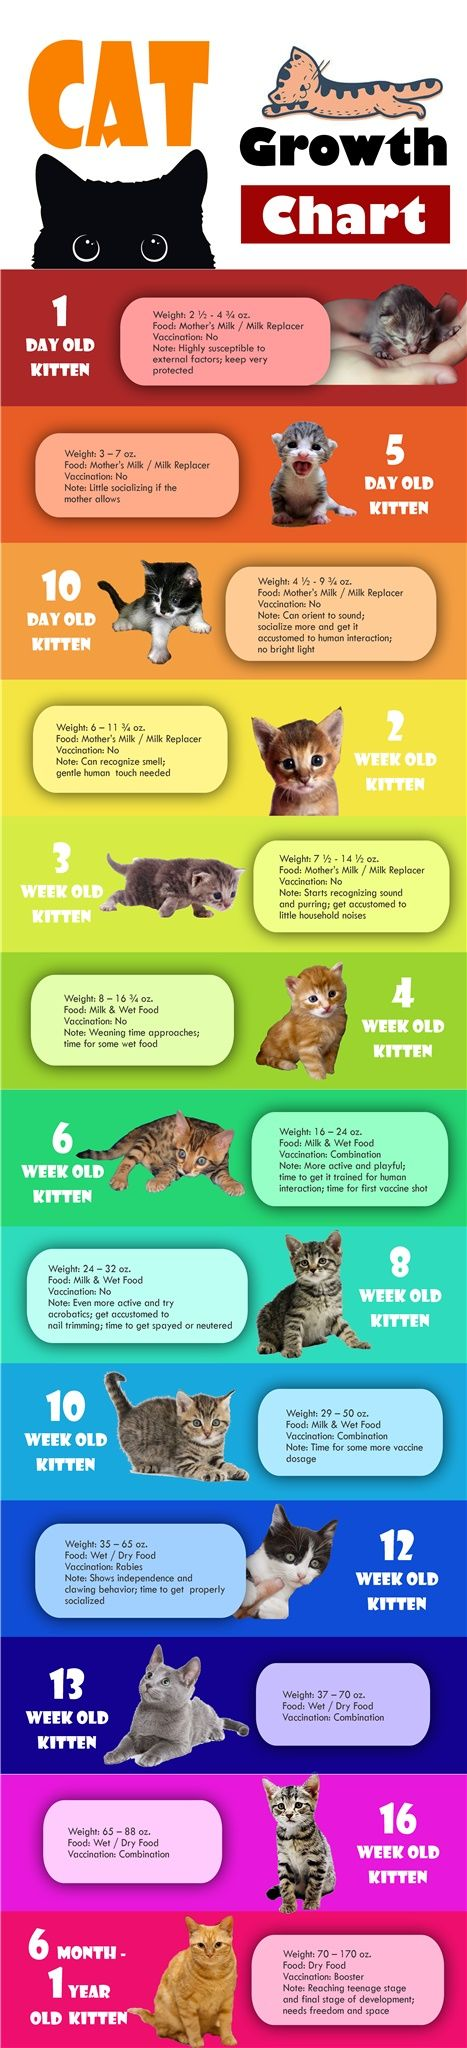 [Infographic] Kitten Cat Growth Chart by Age, Weight and